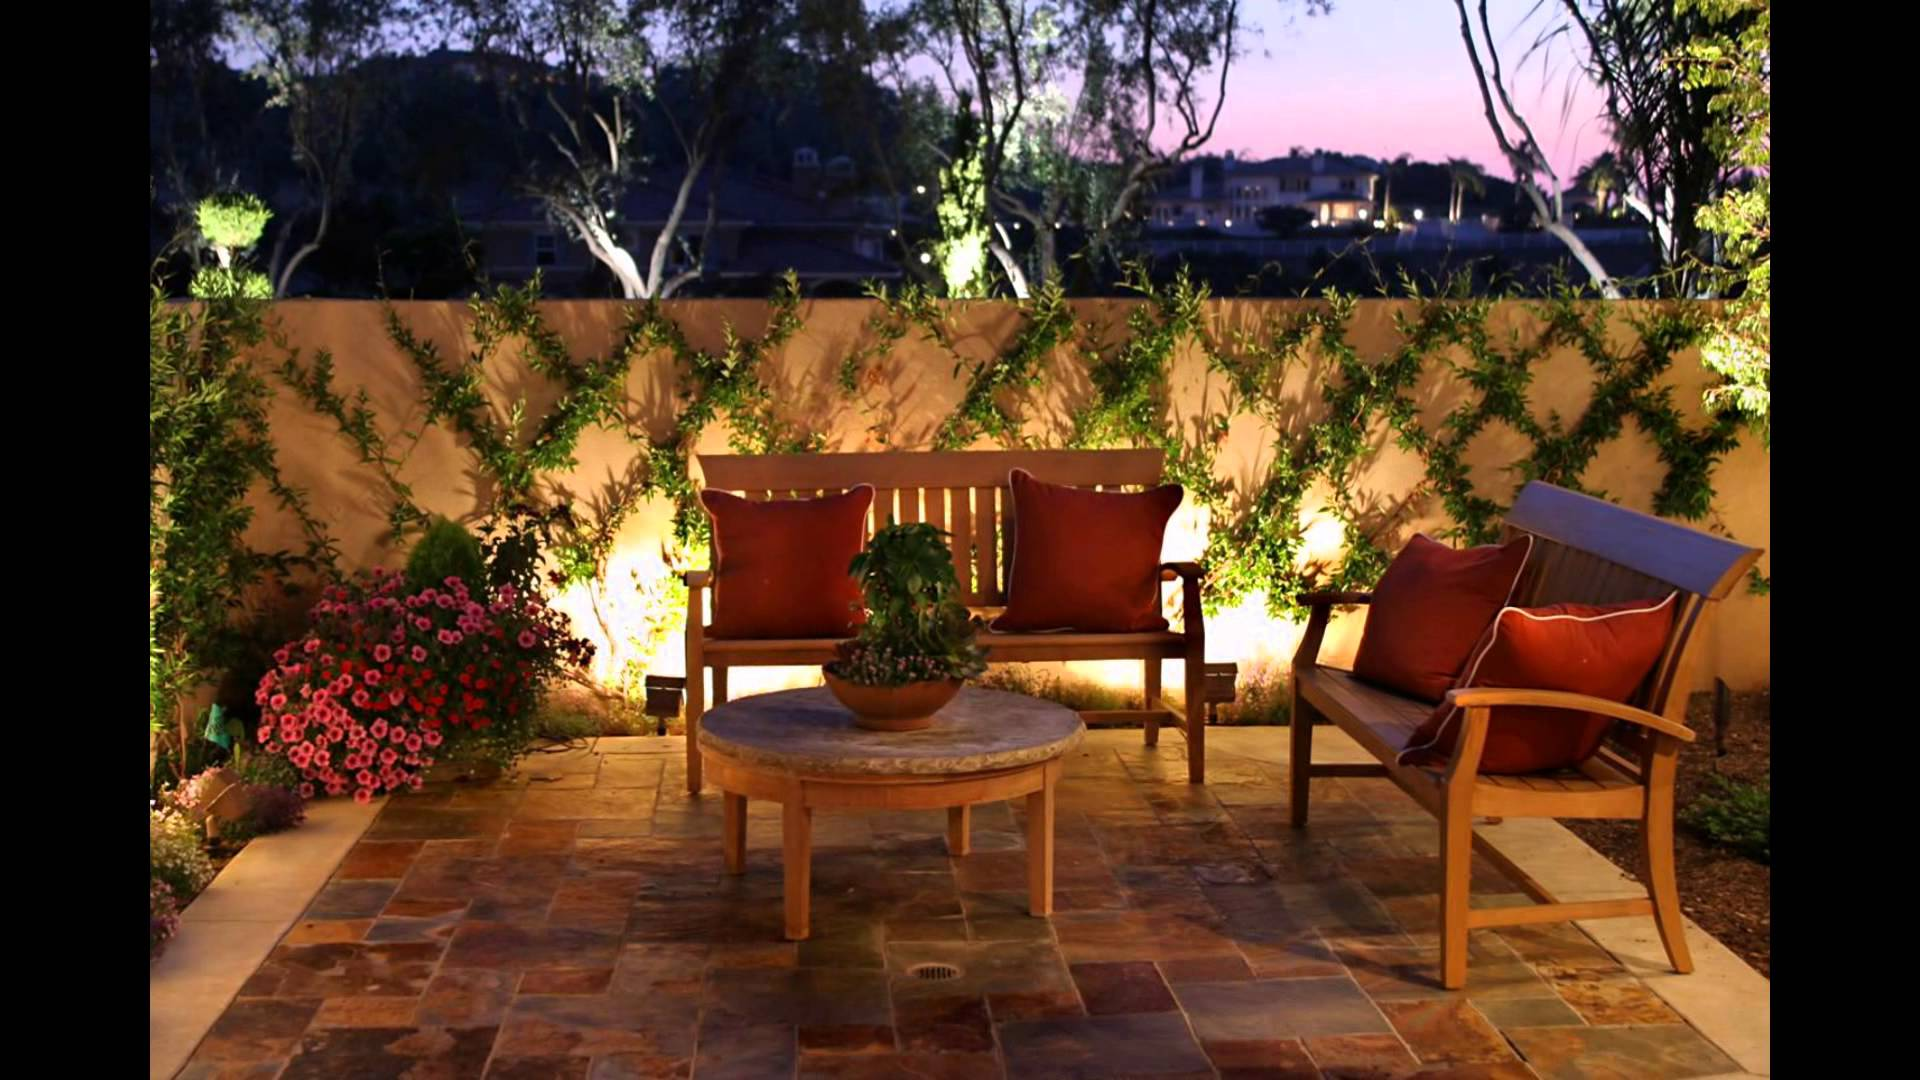 backyard lights backyard lighting ideas GLUSLZK